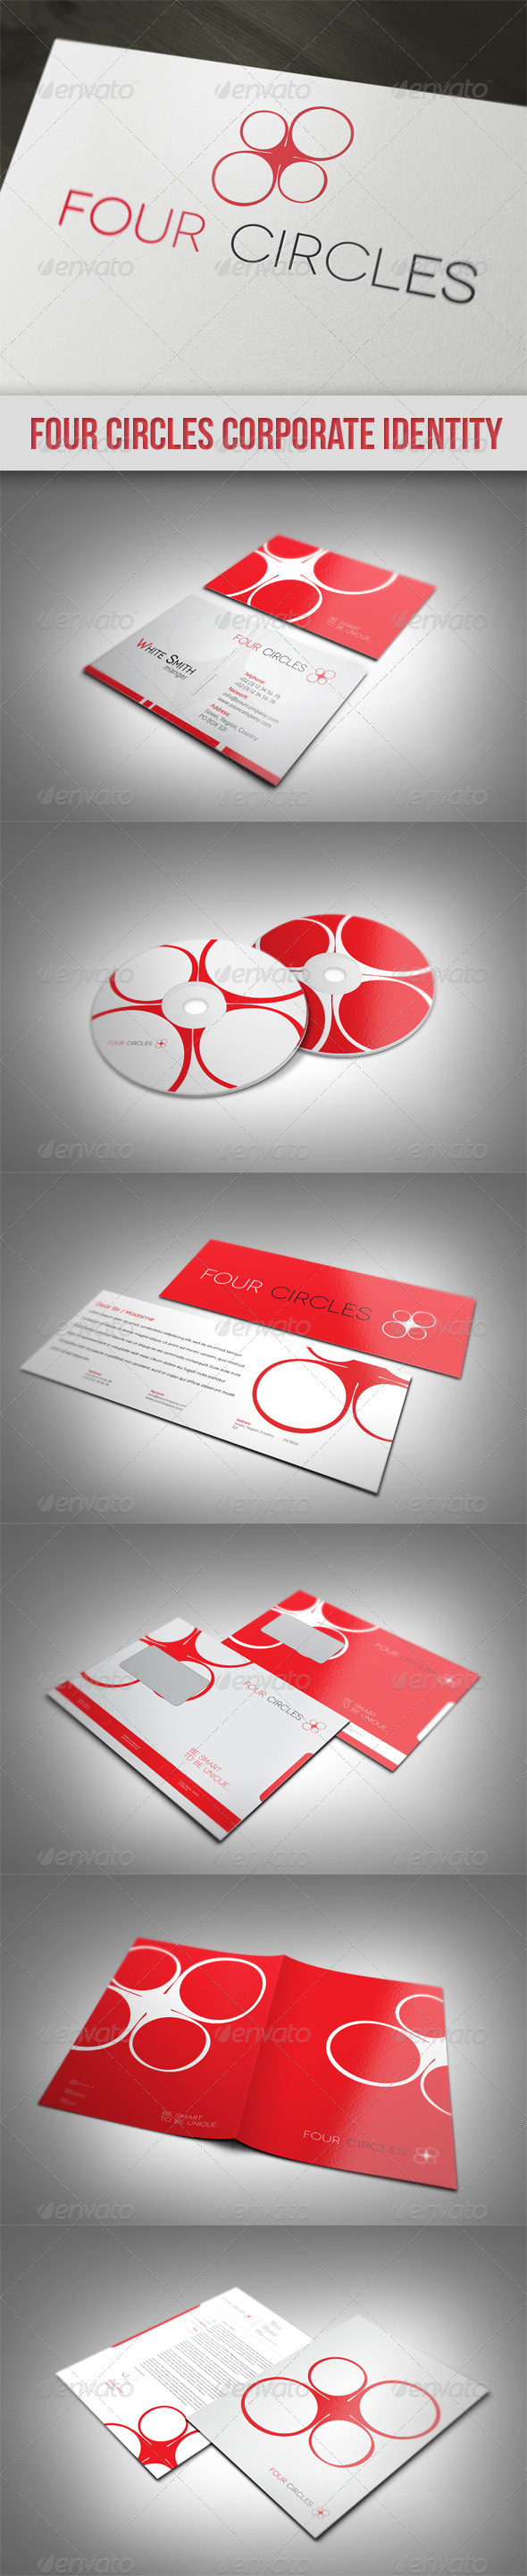 Four Circles Corporate Identity - Stationery Print Templates